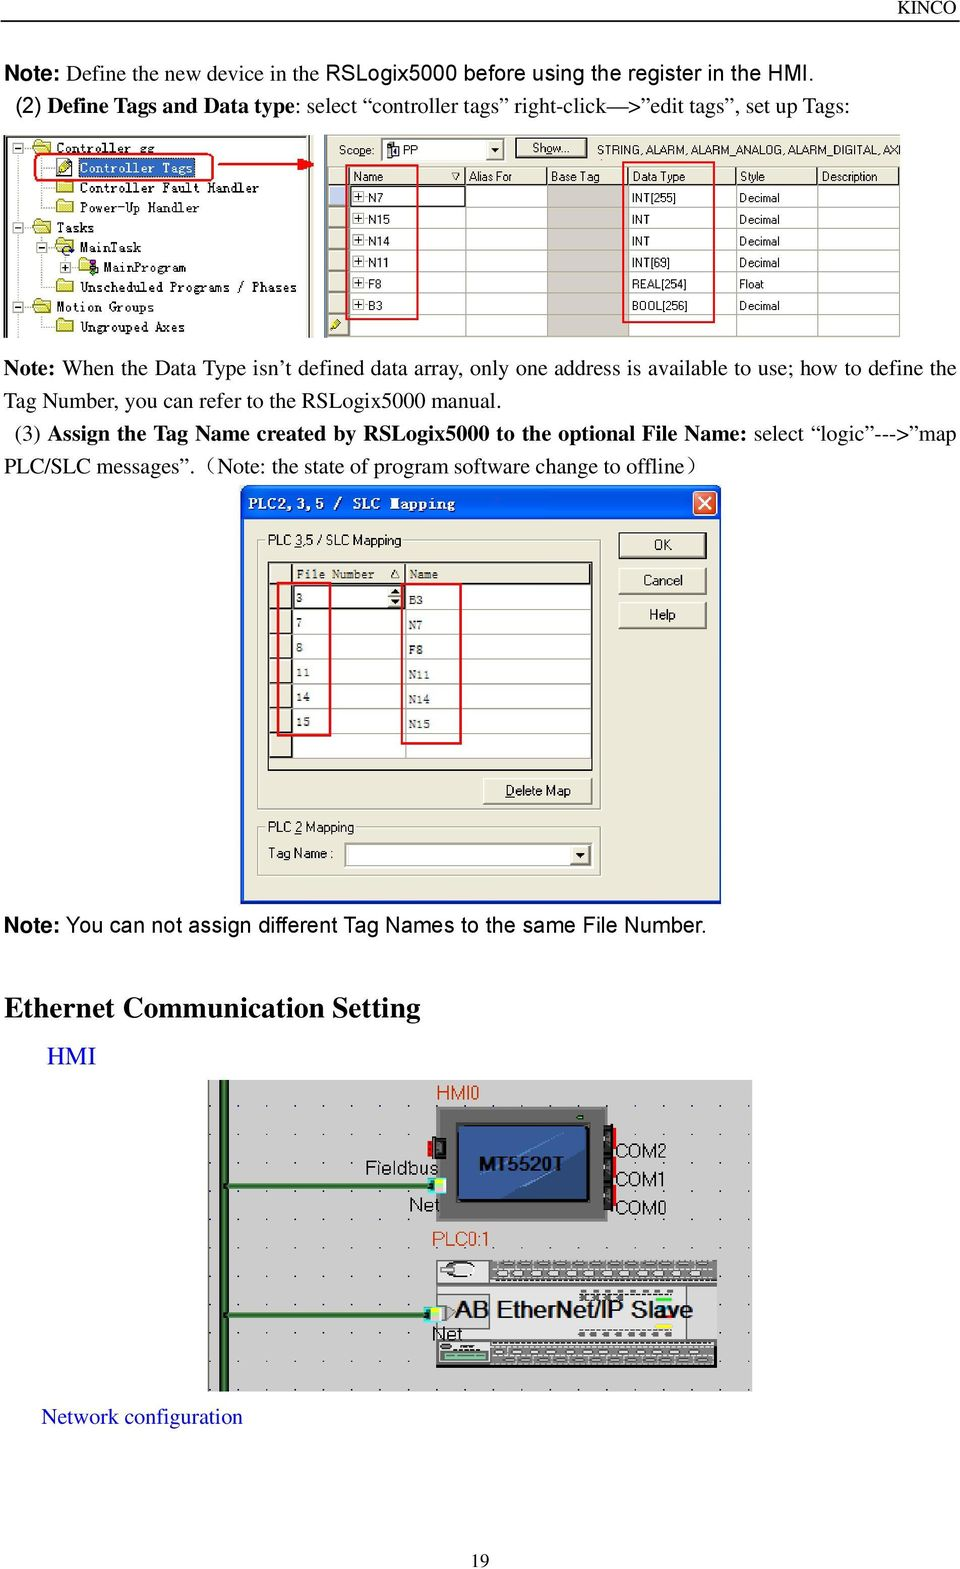 Contents Mt5000 4000 Series Hmi And Plc Connecting Guide Pdf Ethernet Connection Diagram Group Picture Image By Tag Address Is Available To Use How Define The Number You Can Refer